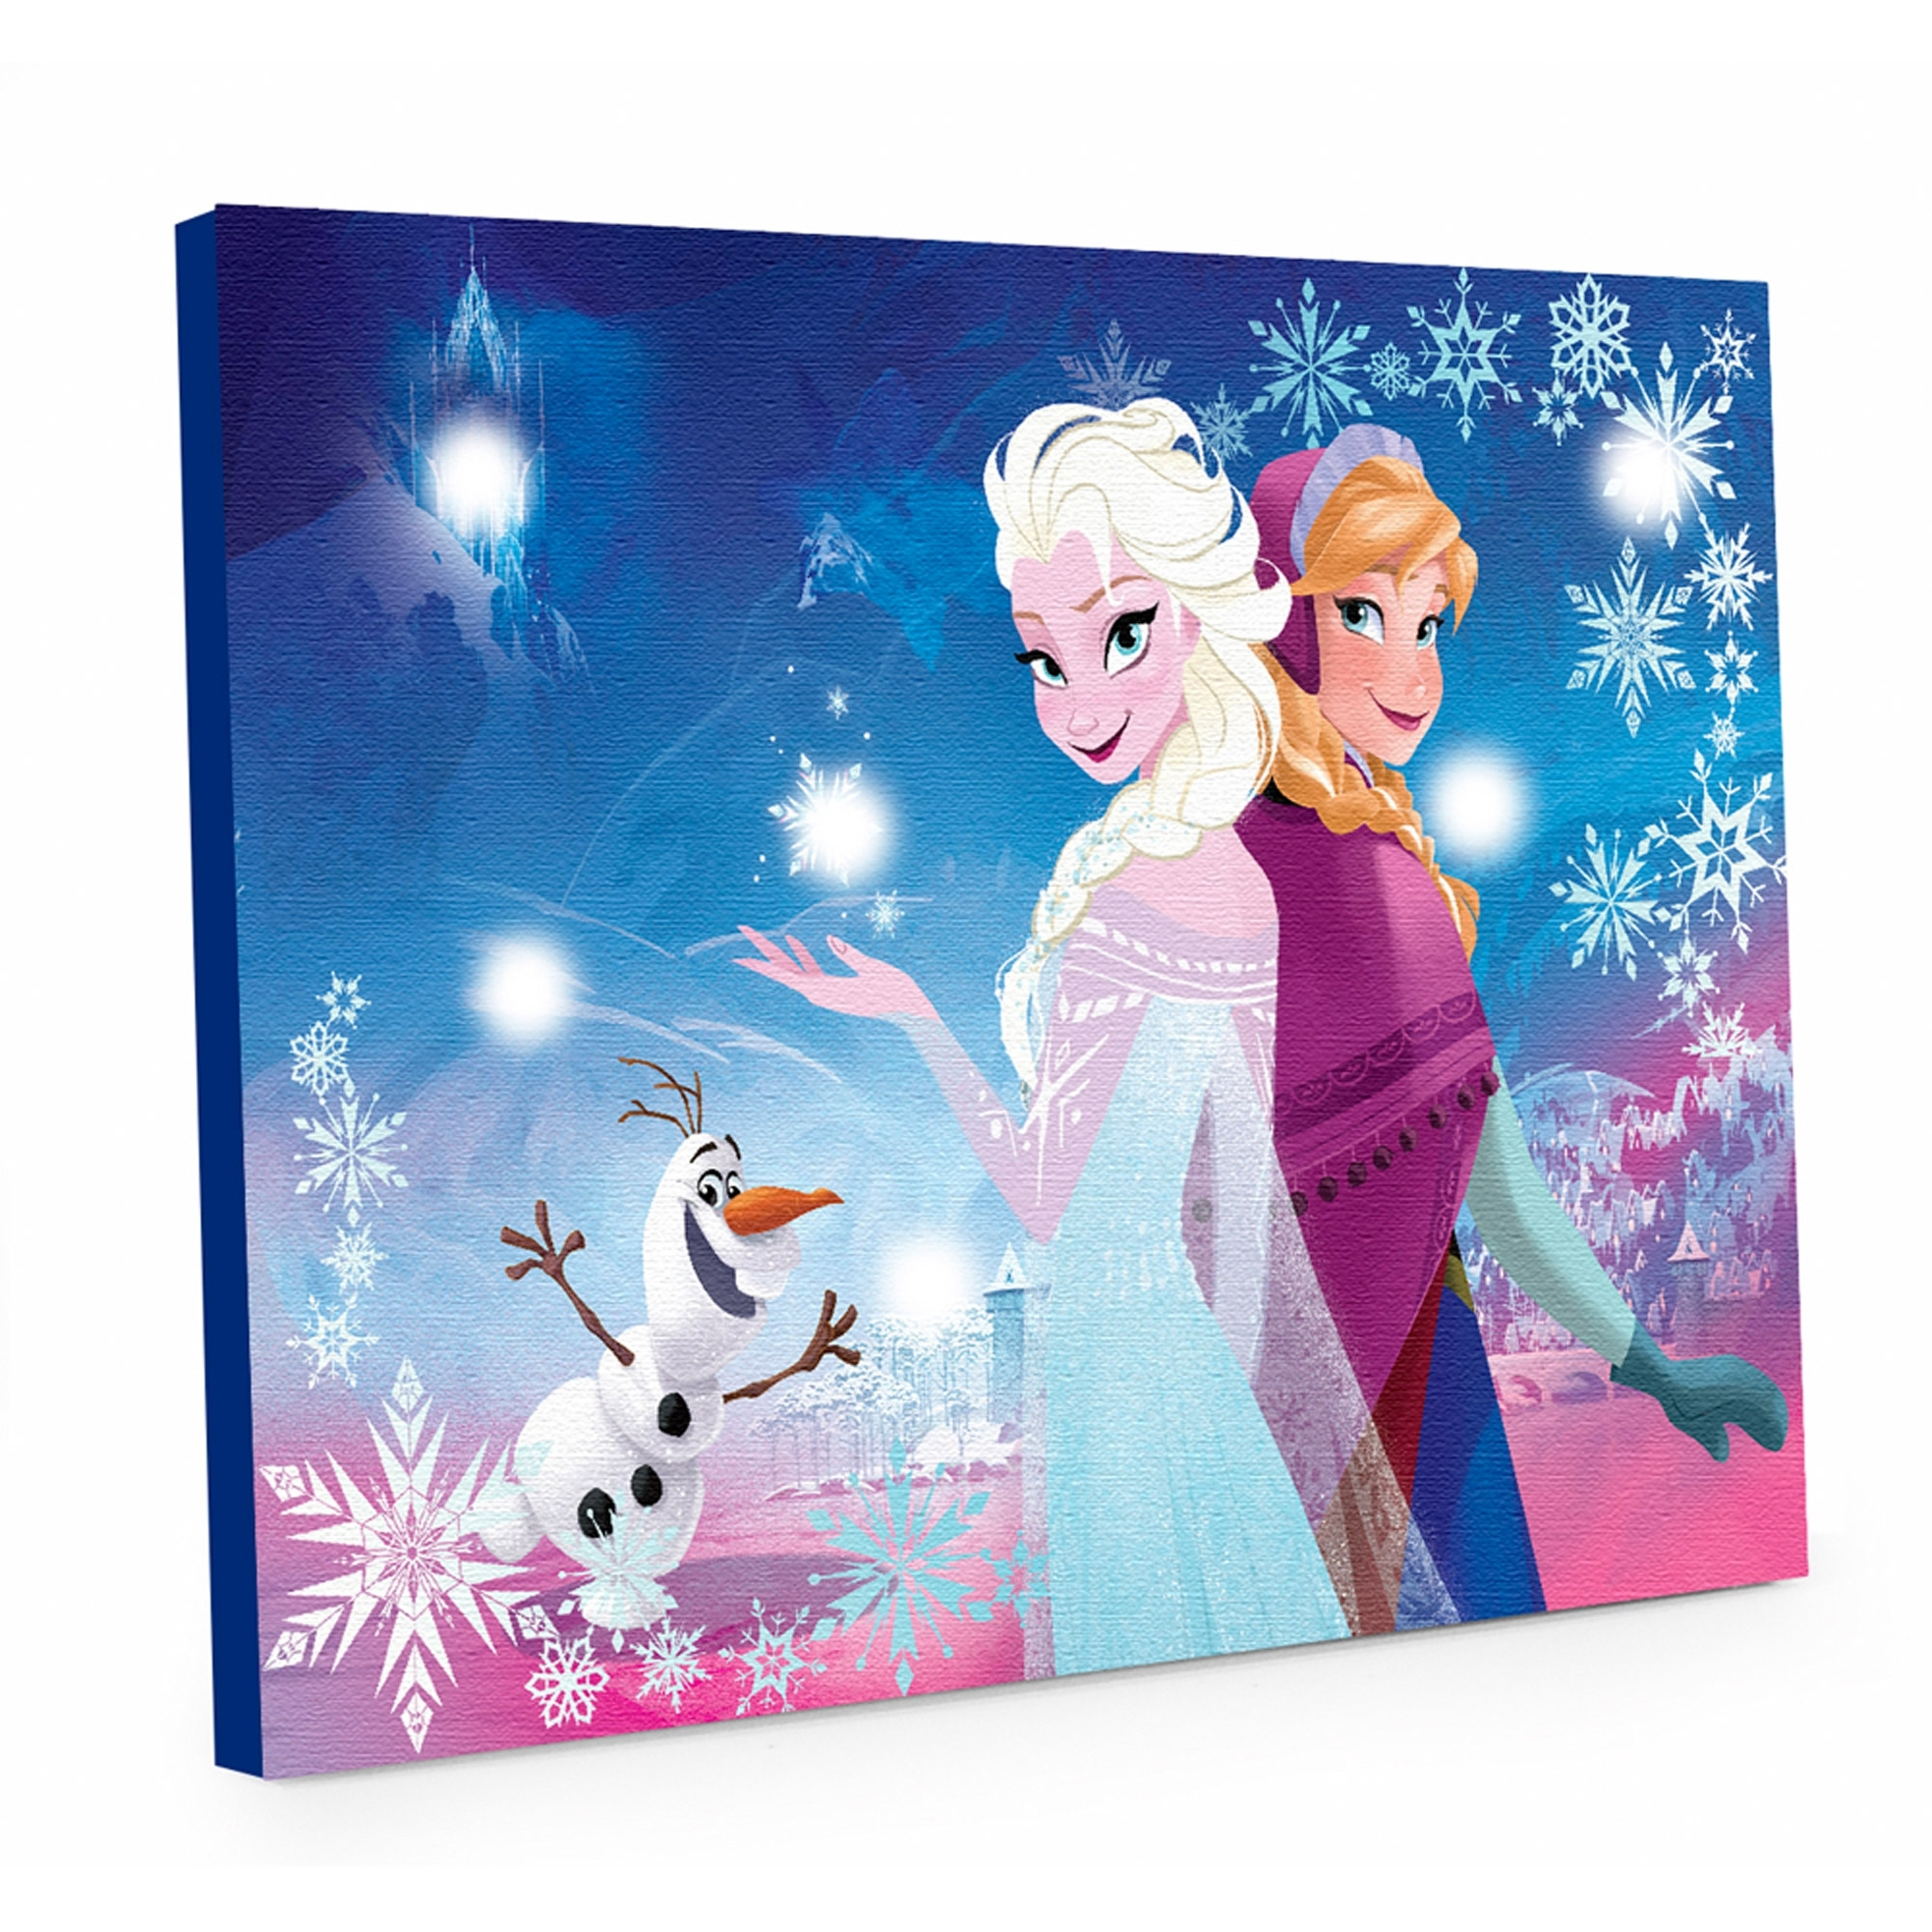 Disney Canvas Wall Art With Most Current Decor: Disney Frozen Light Up Canvas Wall Art With Led Lights For (View 10 of 15)